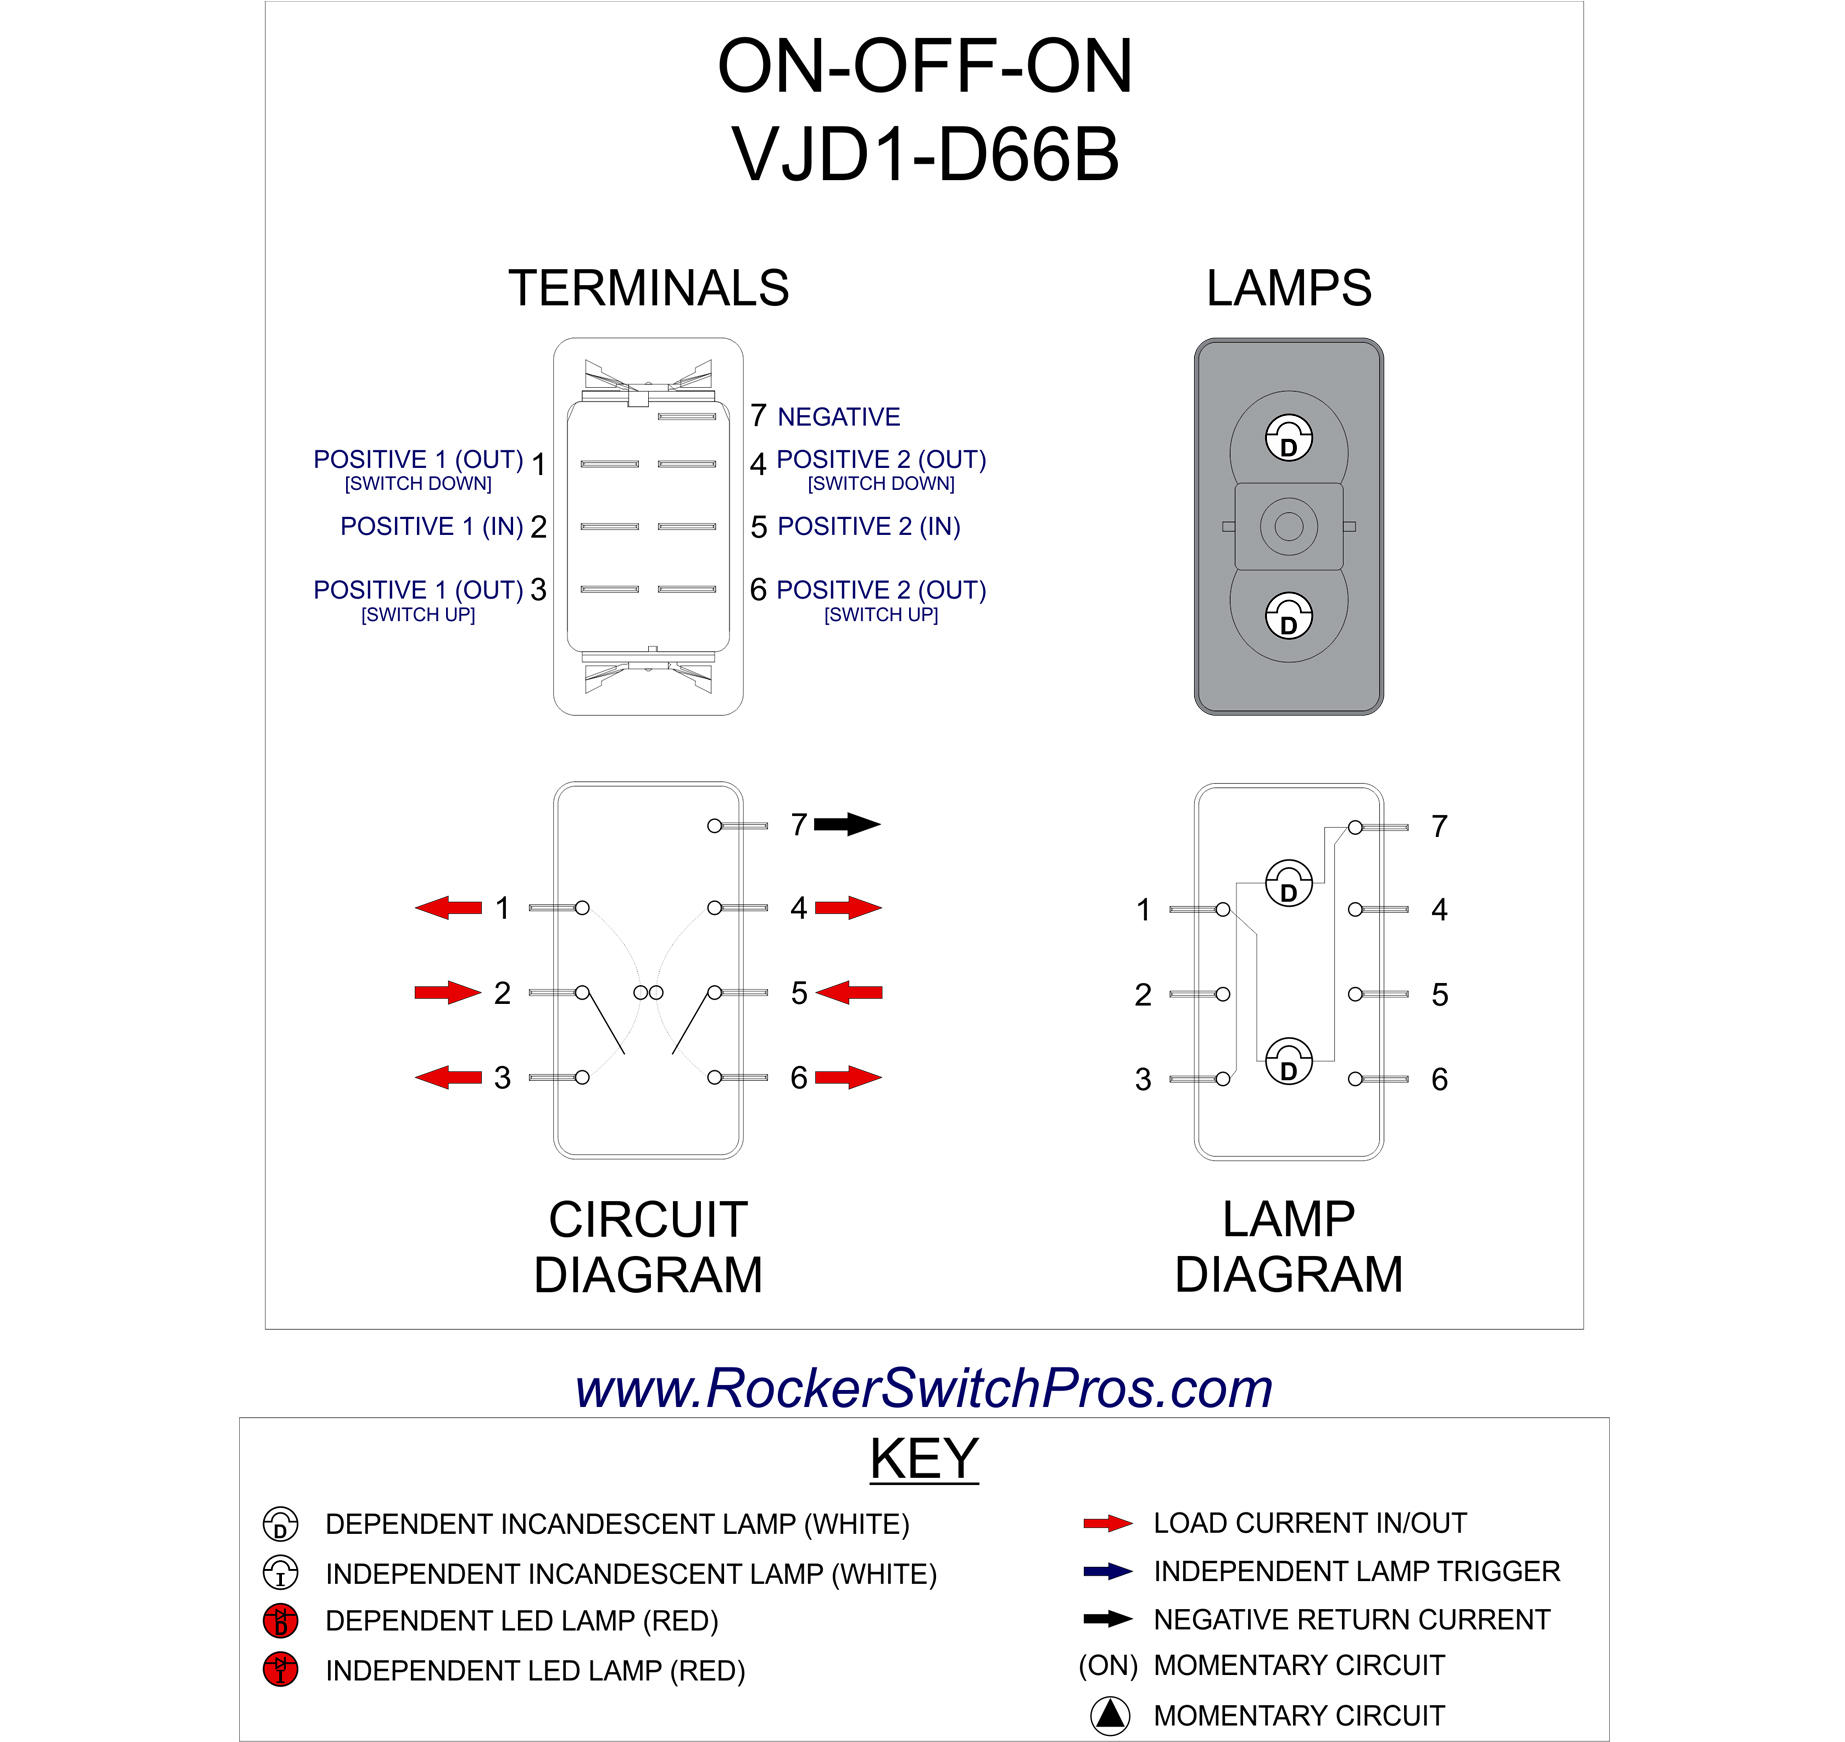 On Off On Toggle Switch Wiring Diagram | Manual E-Books - On Off On Toggle Switch Wiring Diagram